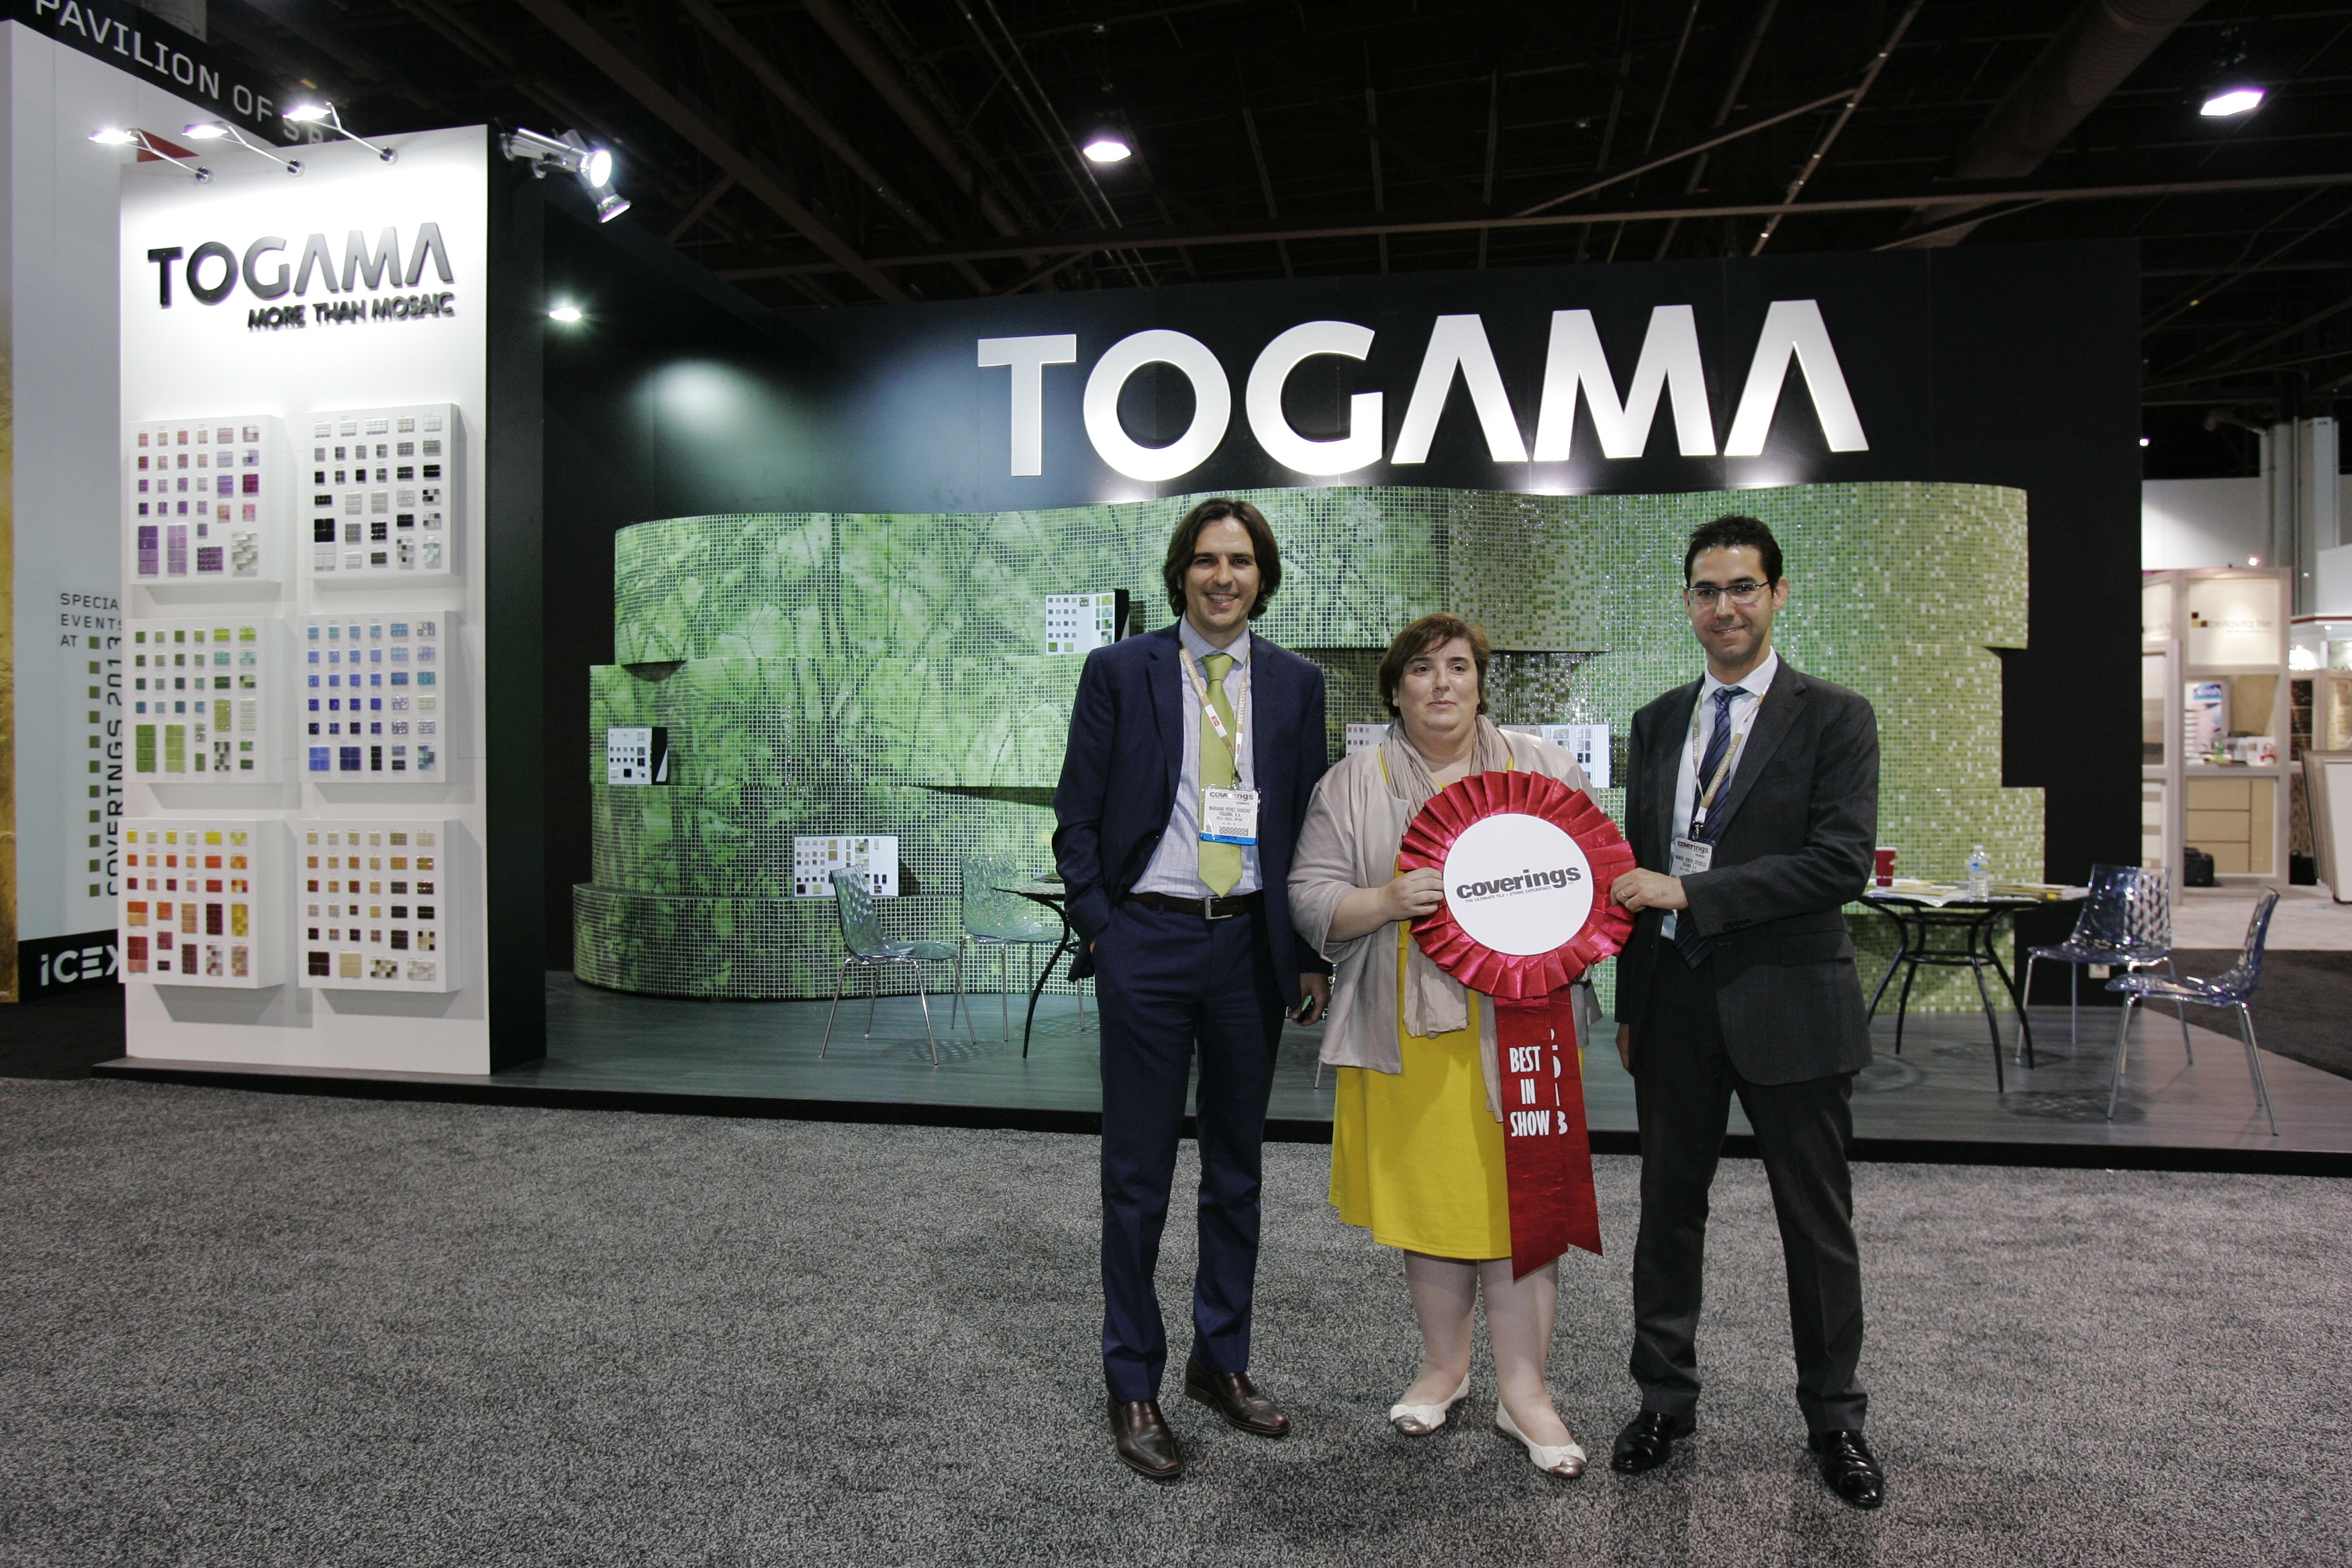 Togama Spanish Tile Company Wins Best In Show At Coverings